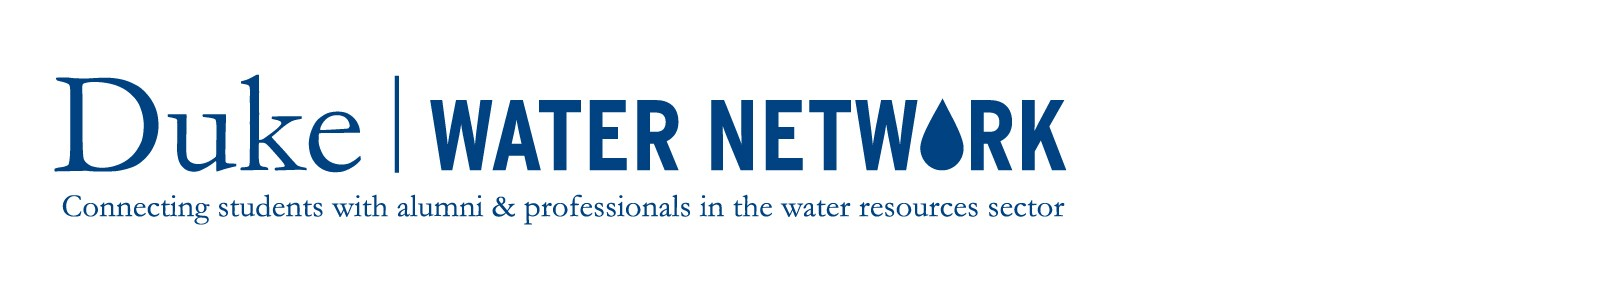 Duke Water Network